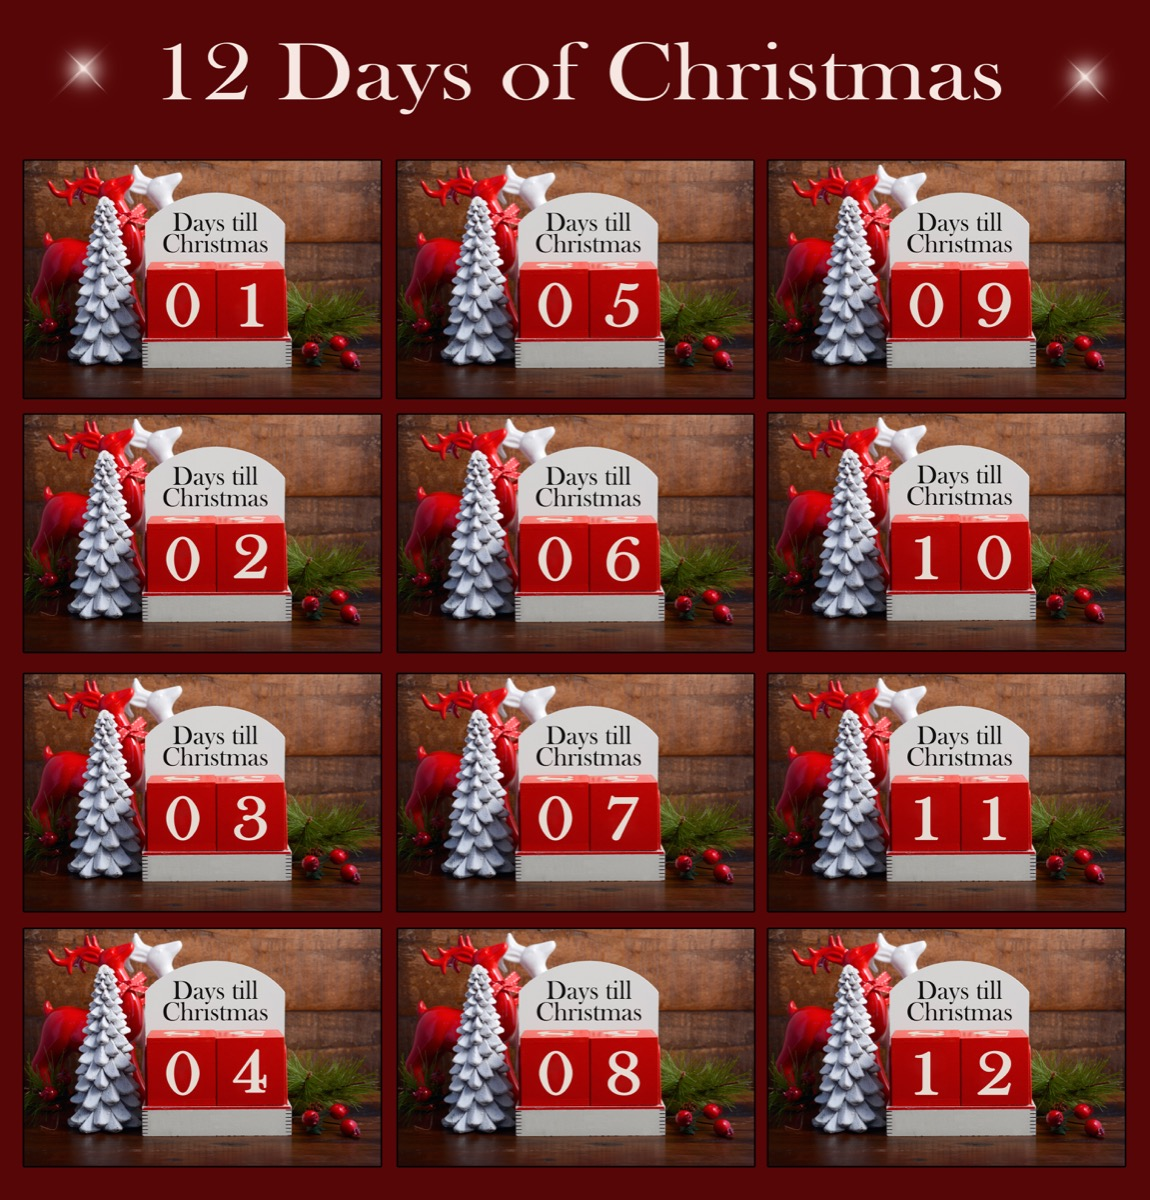 12 days of christmas illustration with calendars